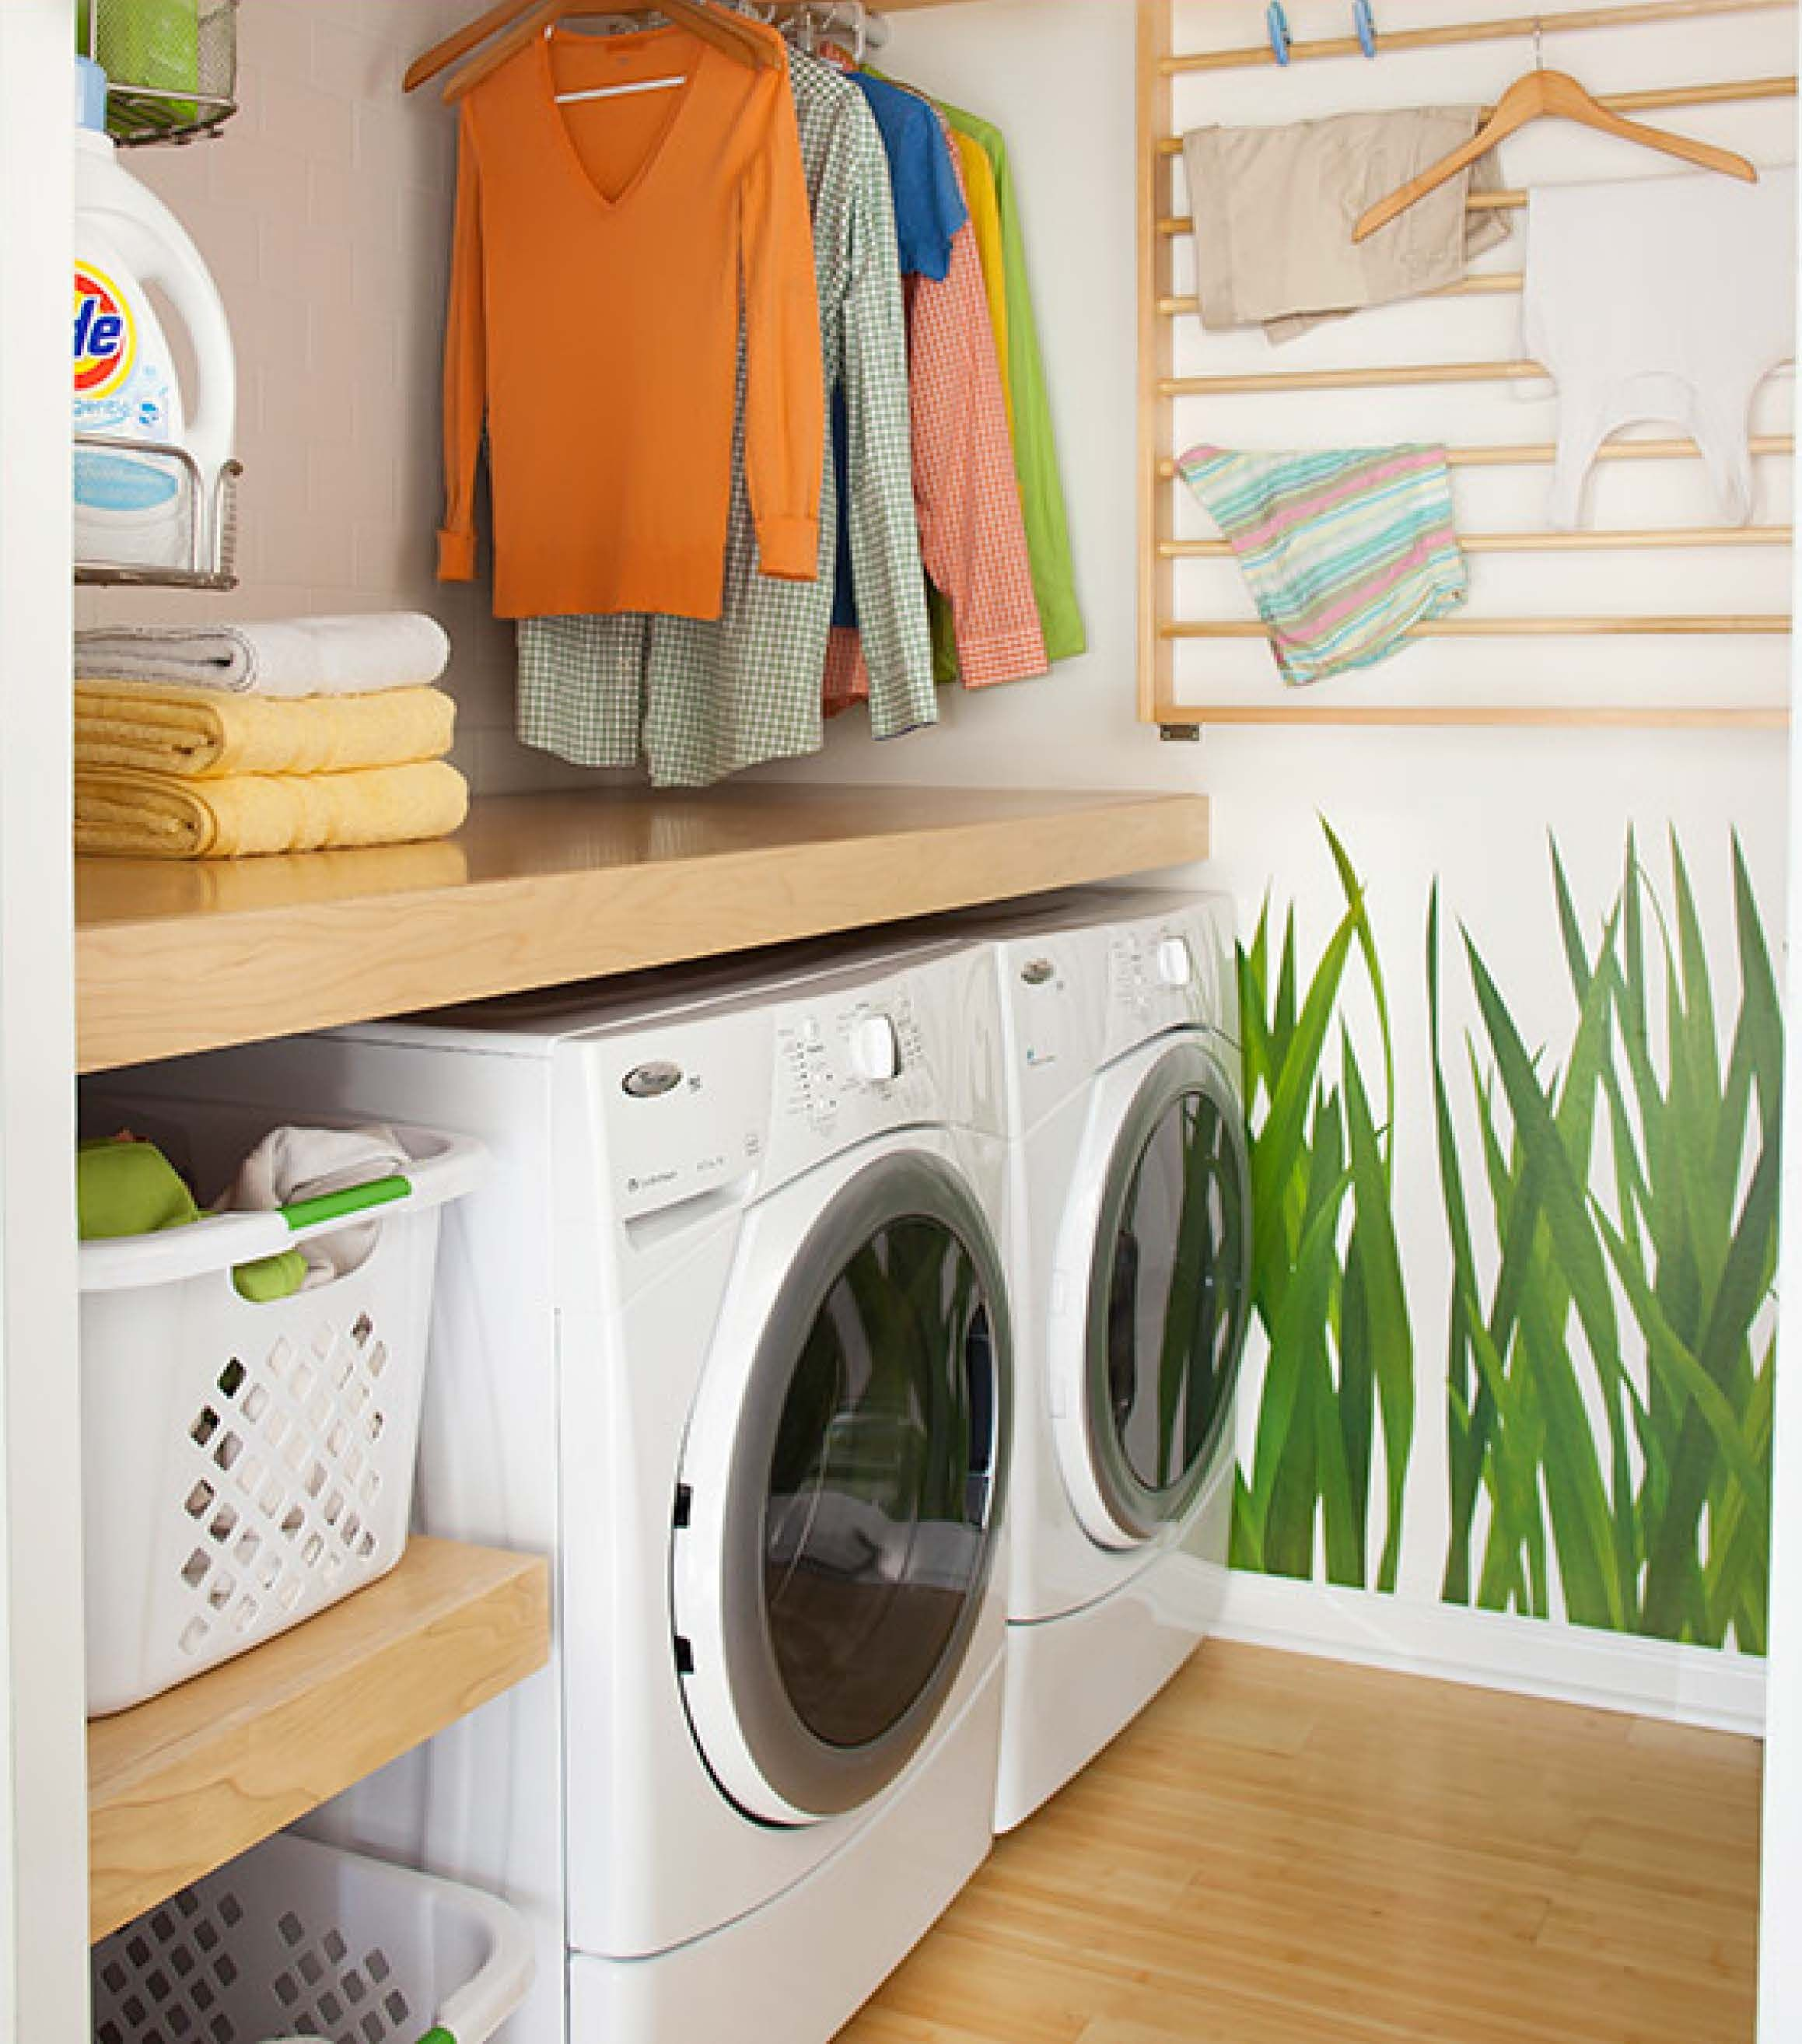 Ms Smartie Pants Loads of Style Laundry room ispiration